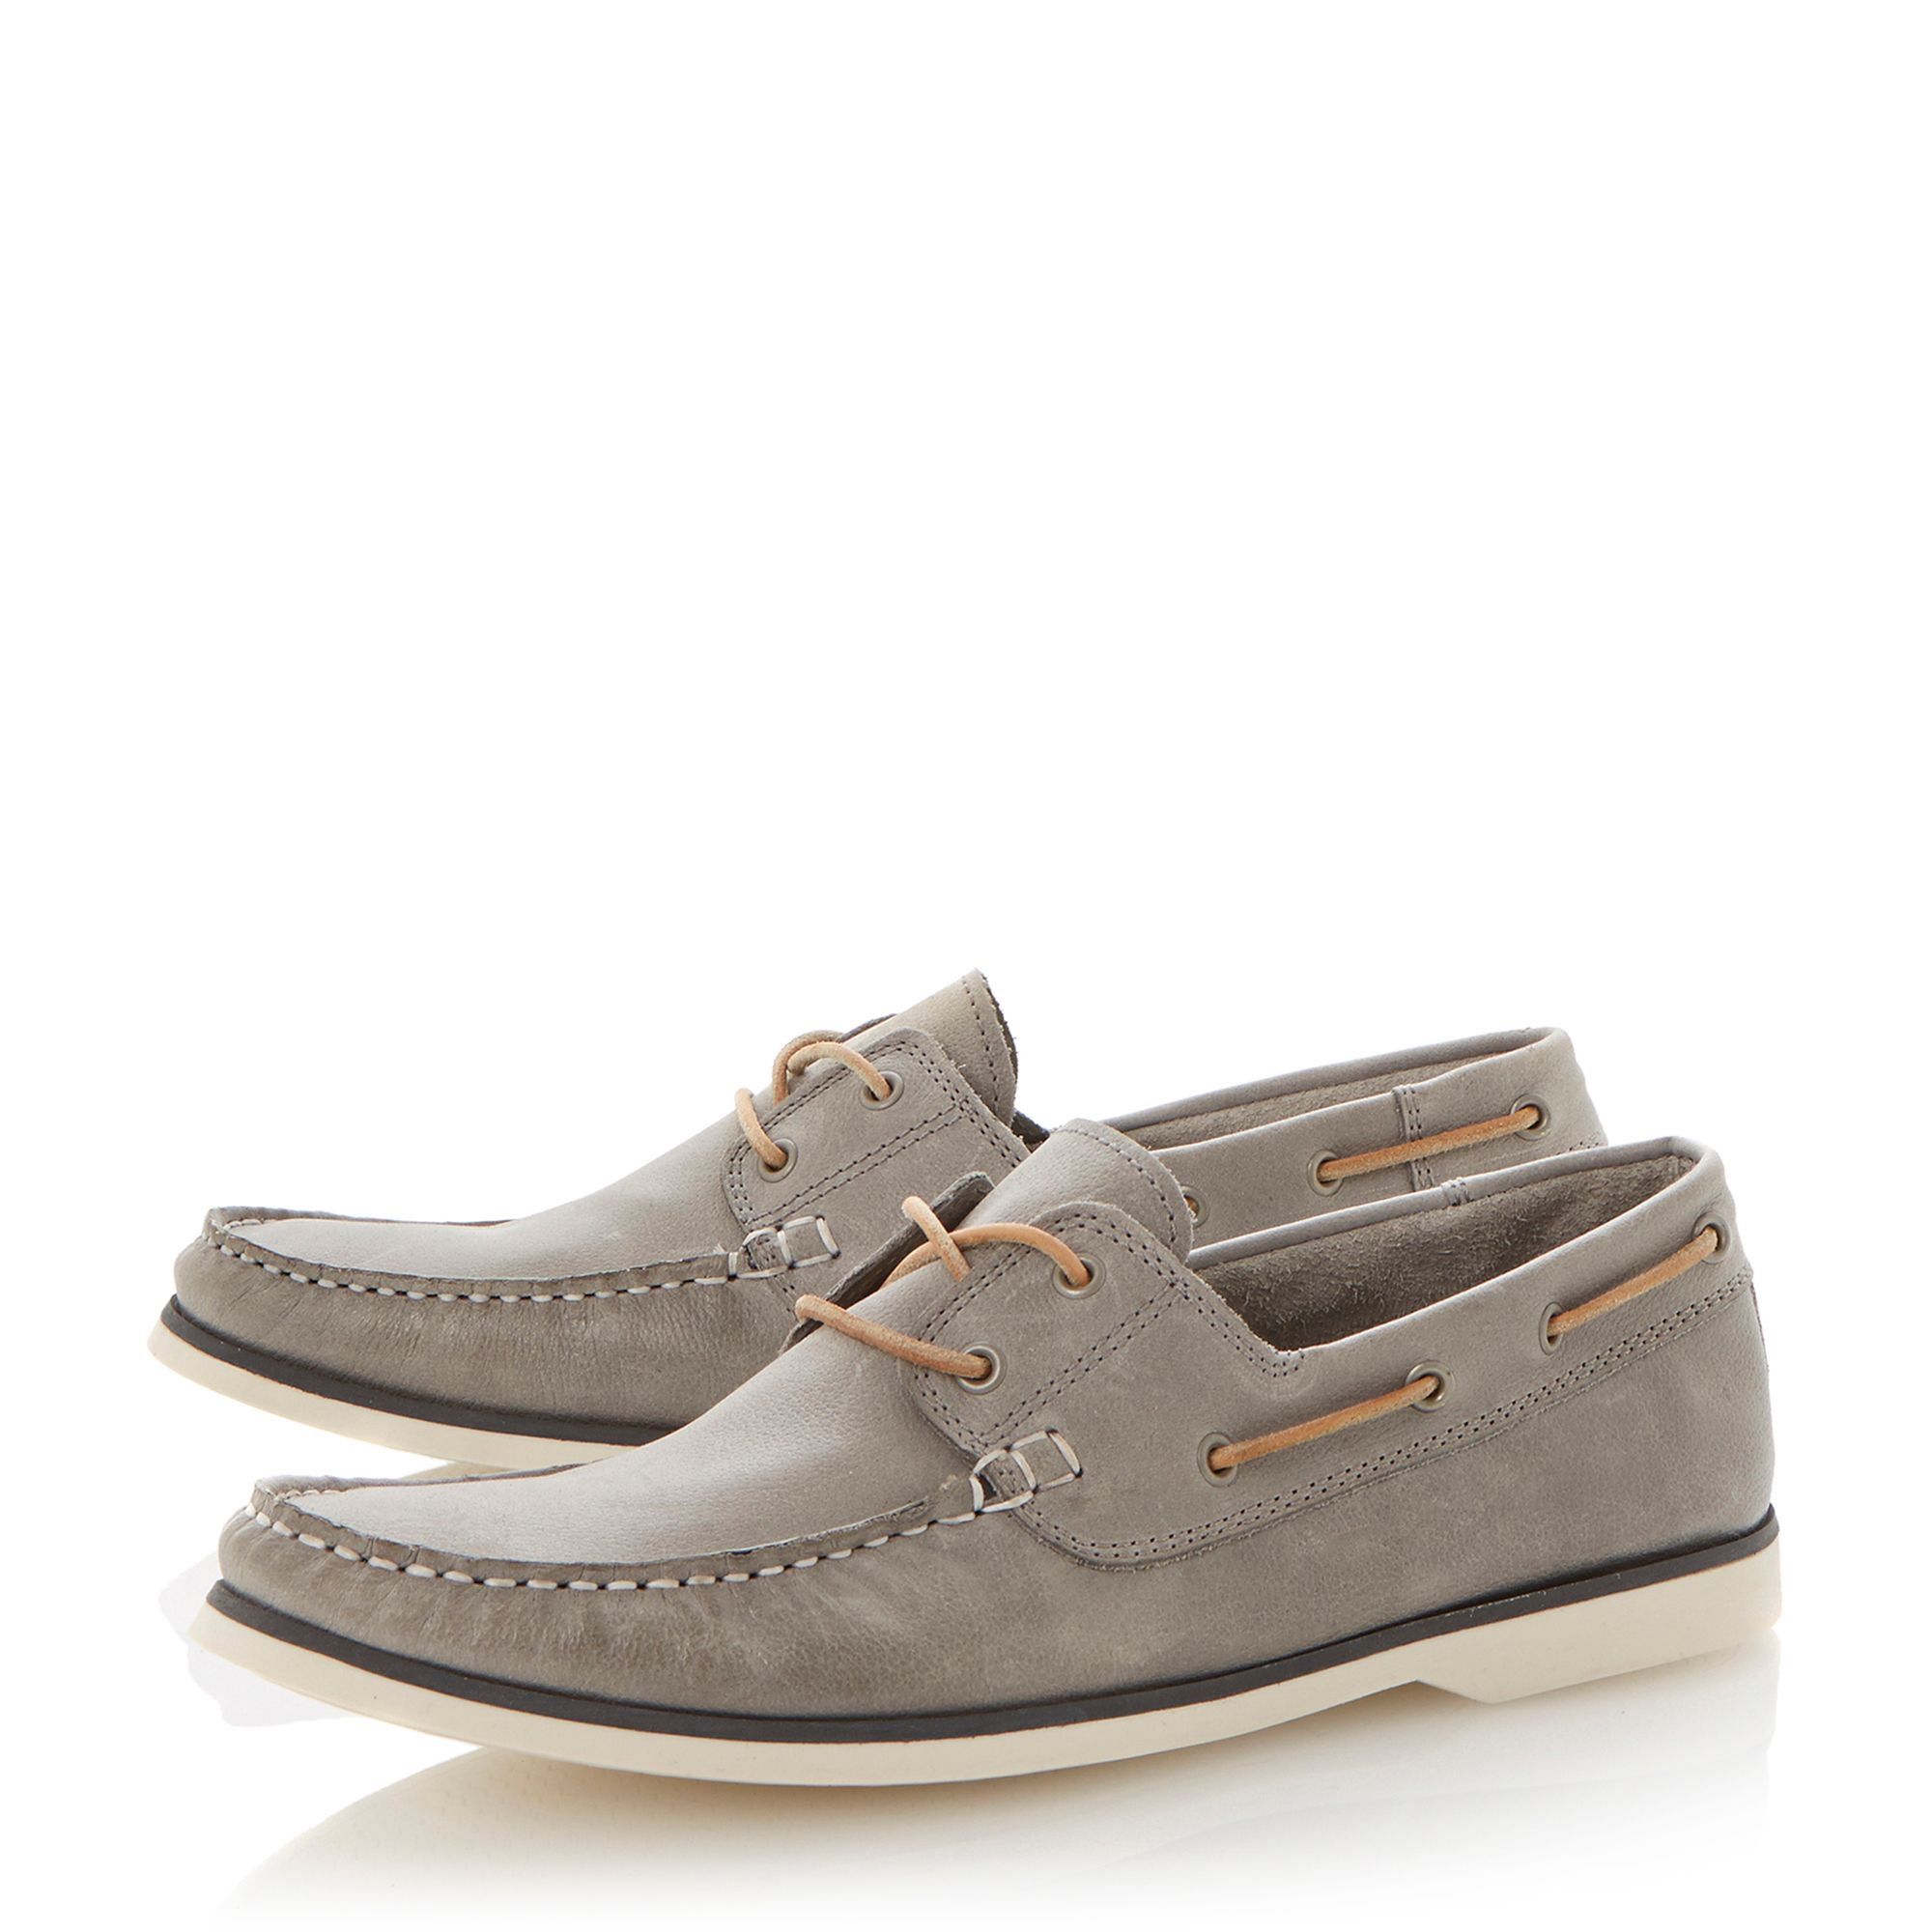 Battleship boat shoes